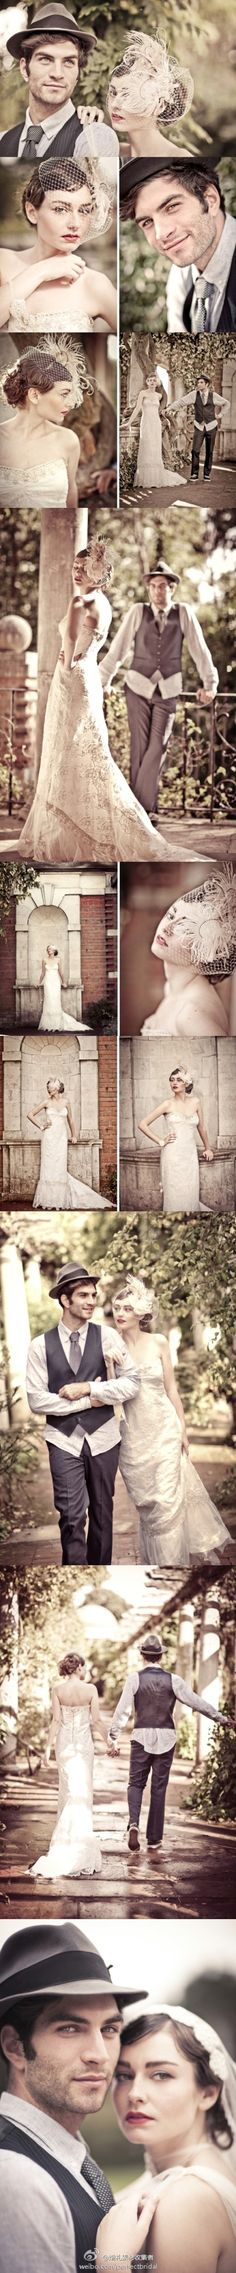 Wedding portrait in vintage style~ You guys would look fabulous in  pics like these (or any pics for that matter)